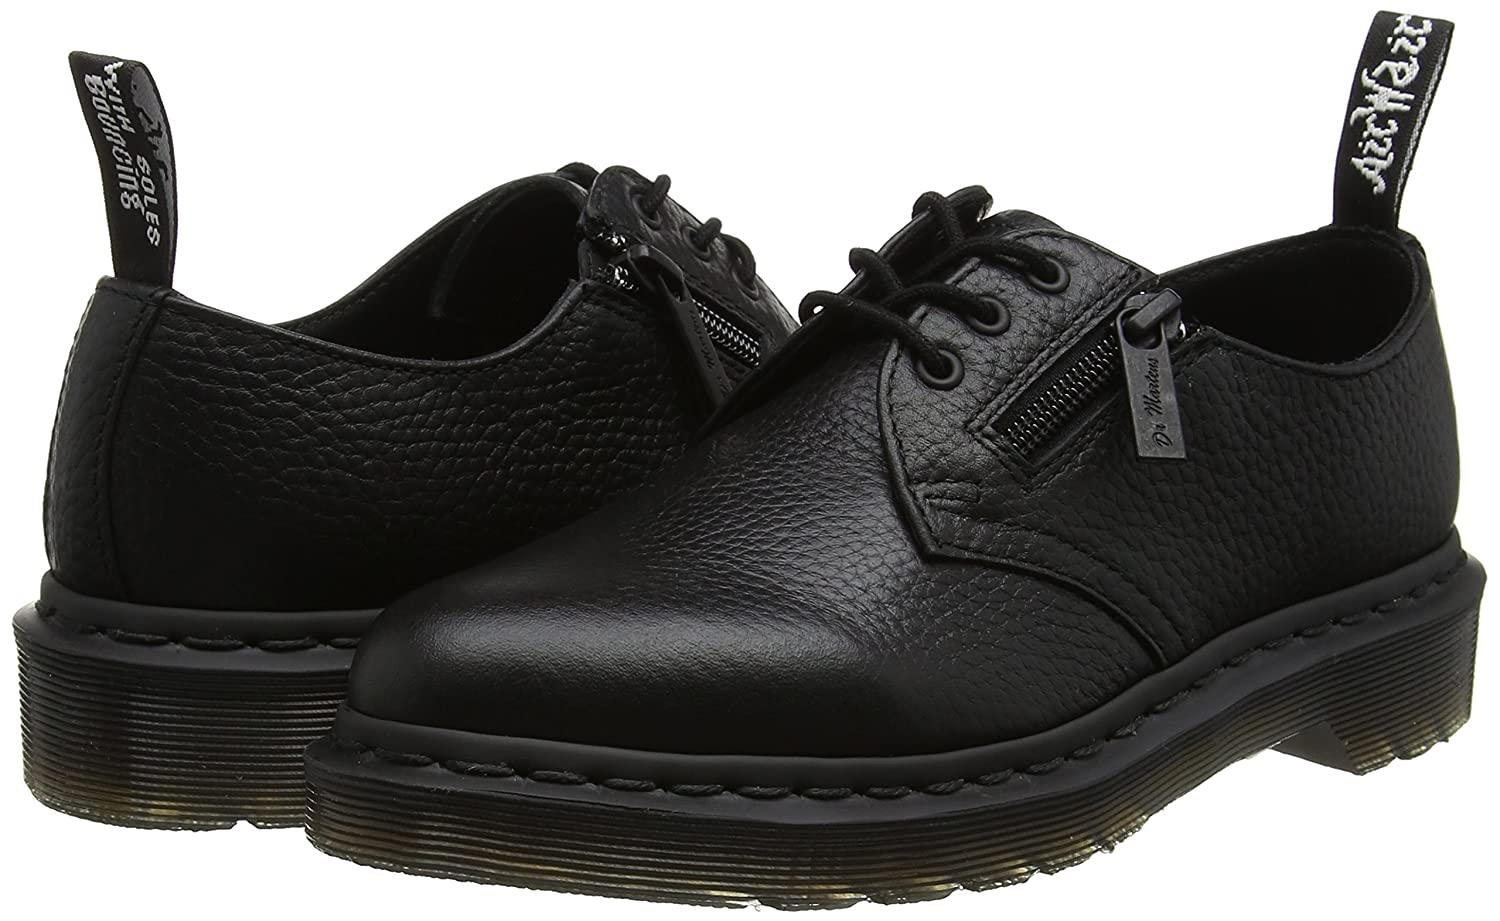 Dr. Martens B01IDSAMVW Women's 1461 W/Zip Oxford B01IDSAMVW Martens 3 UK/5 B US|Black 4a2d46